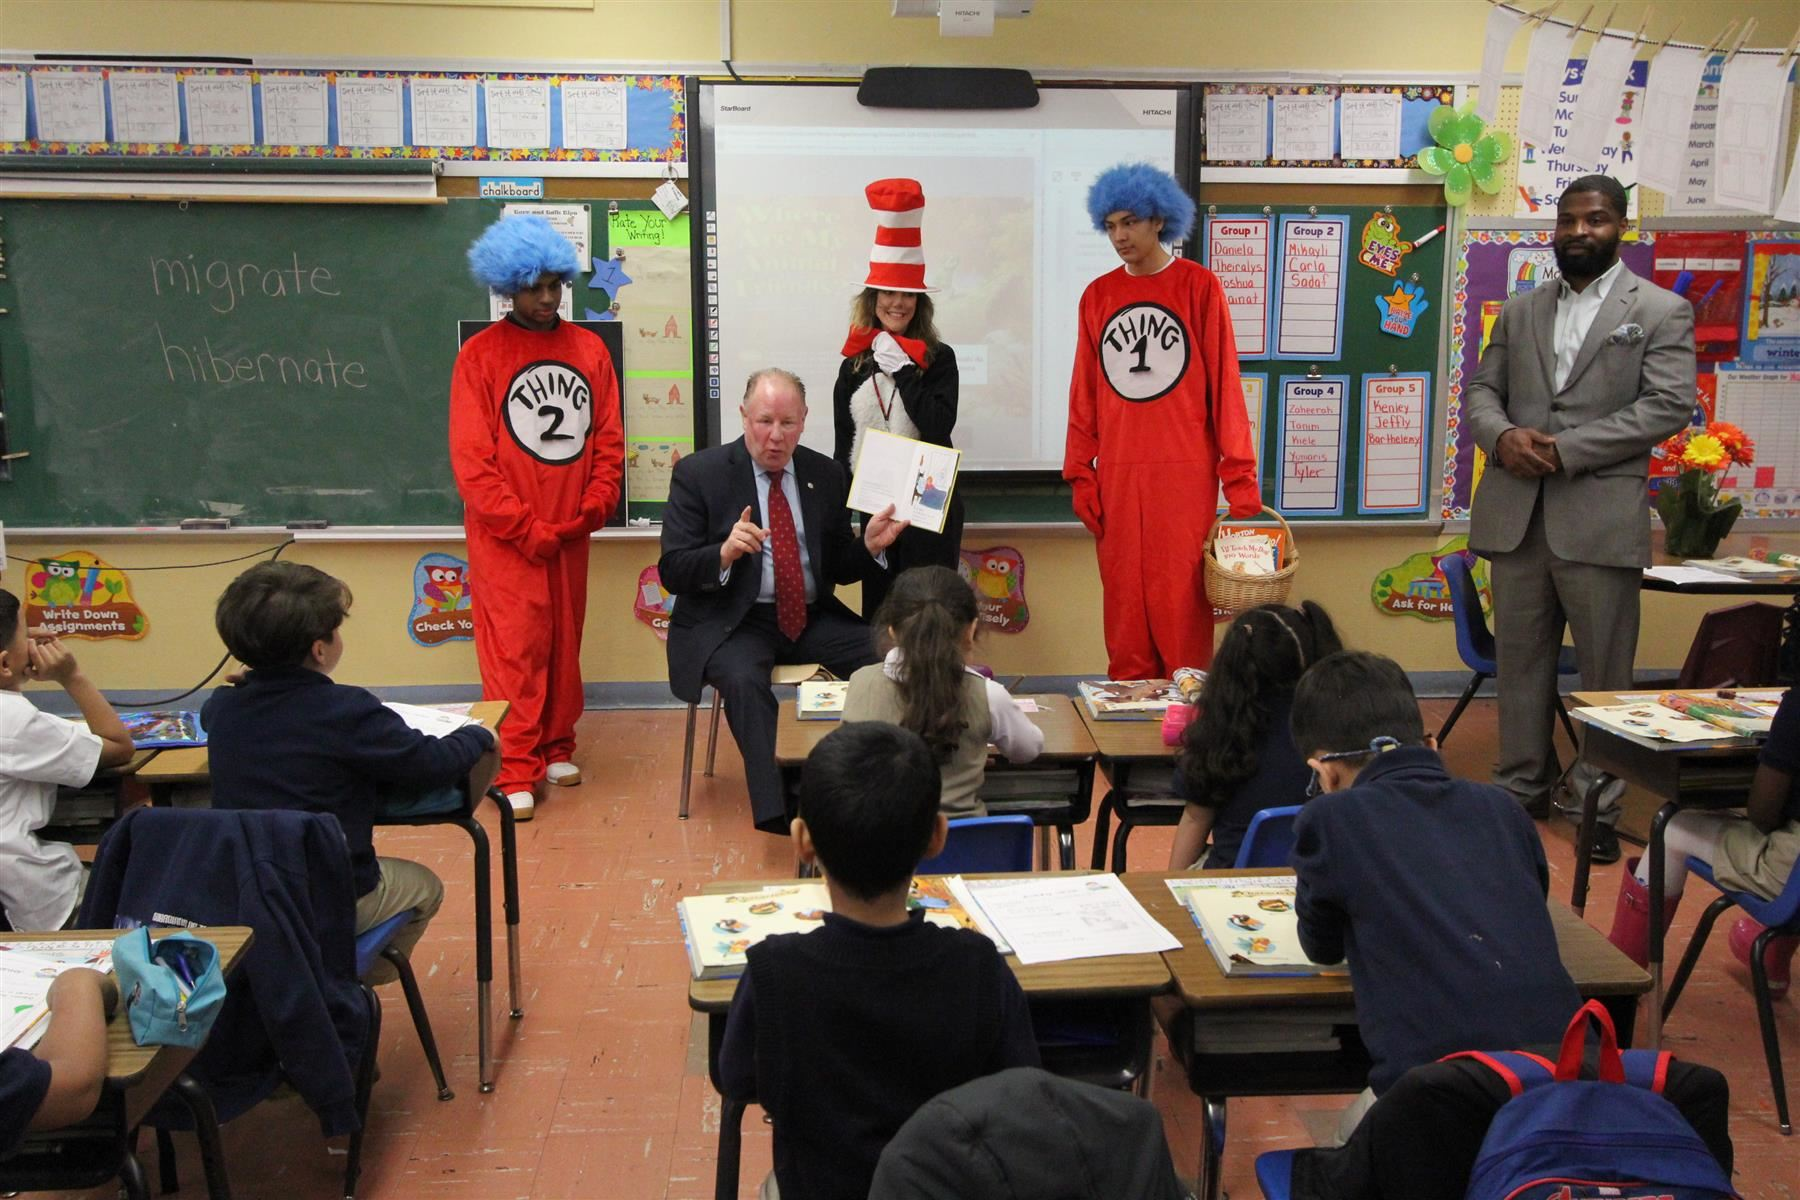 Mayor Visits School 23 for Read Across America